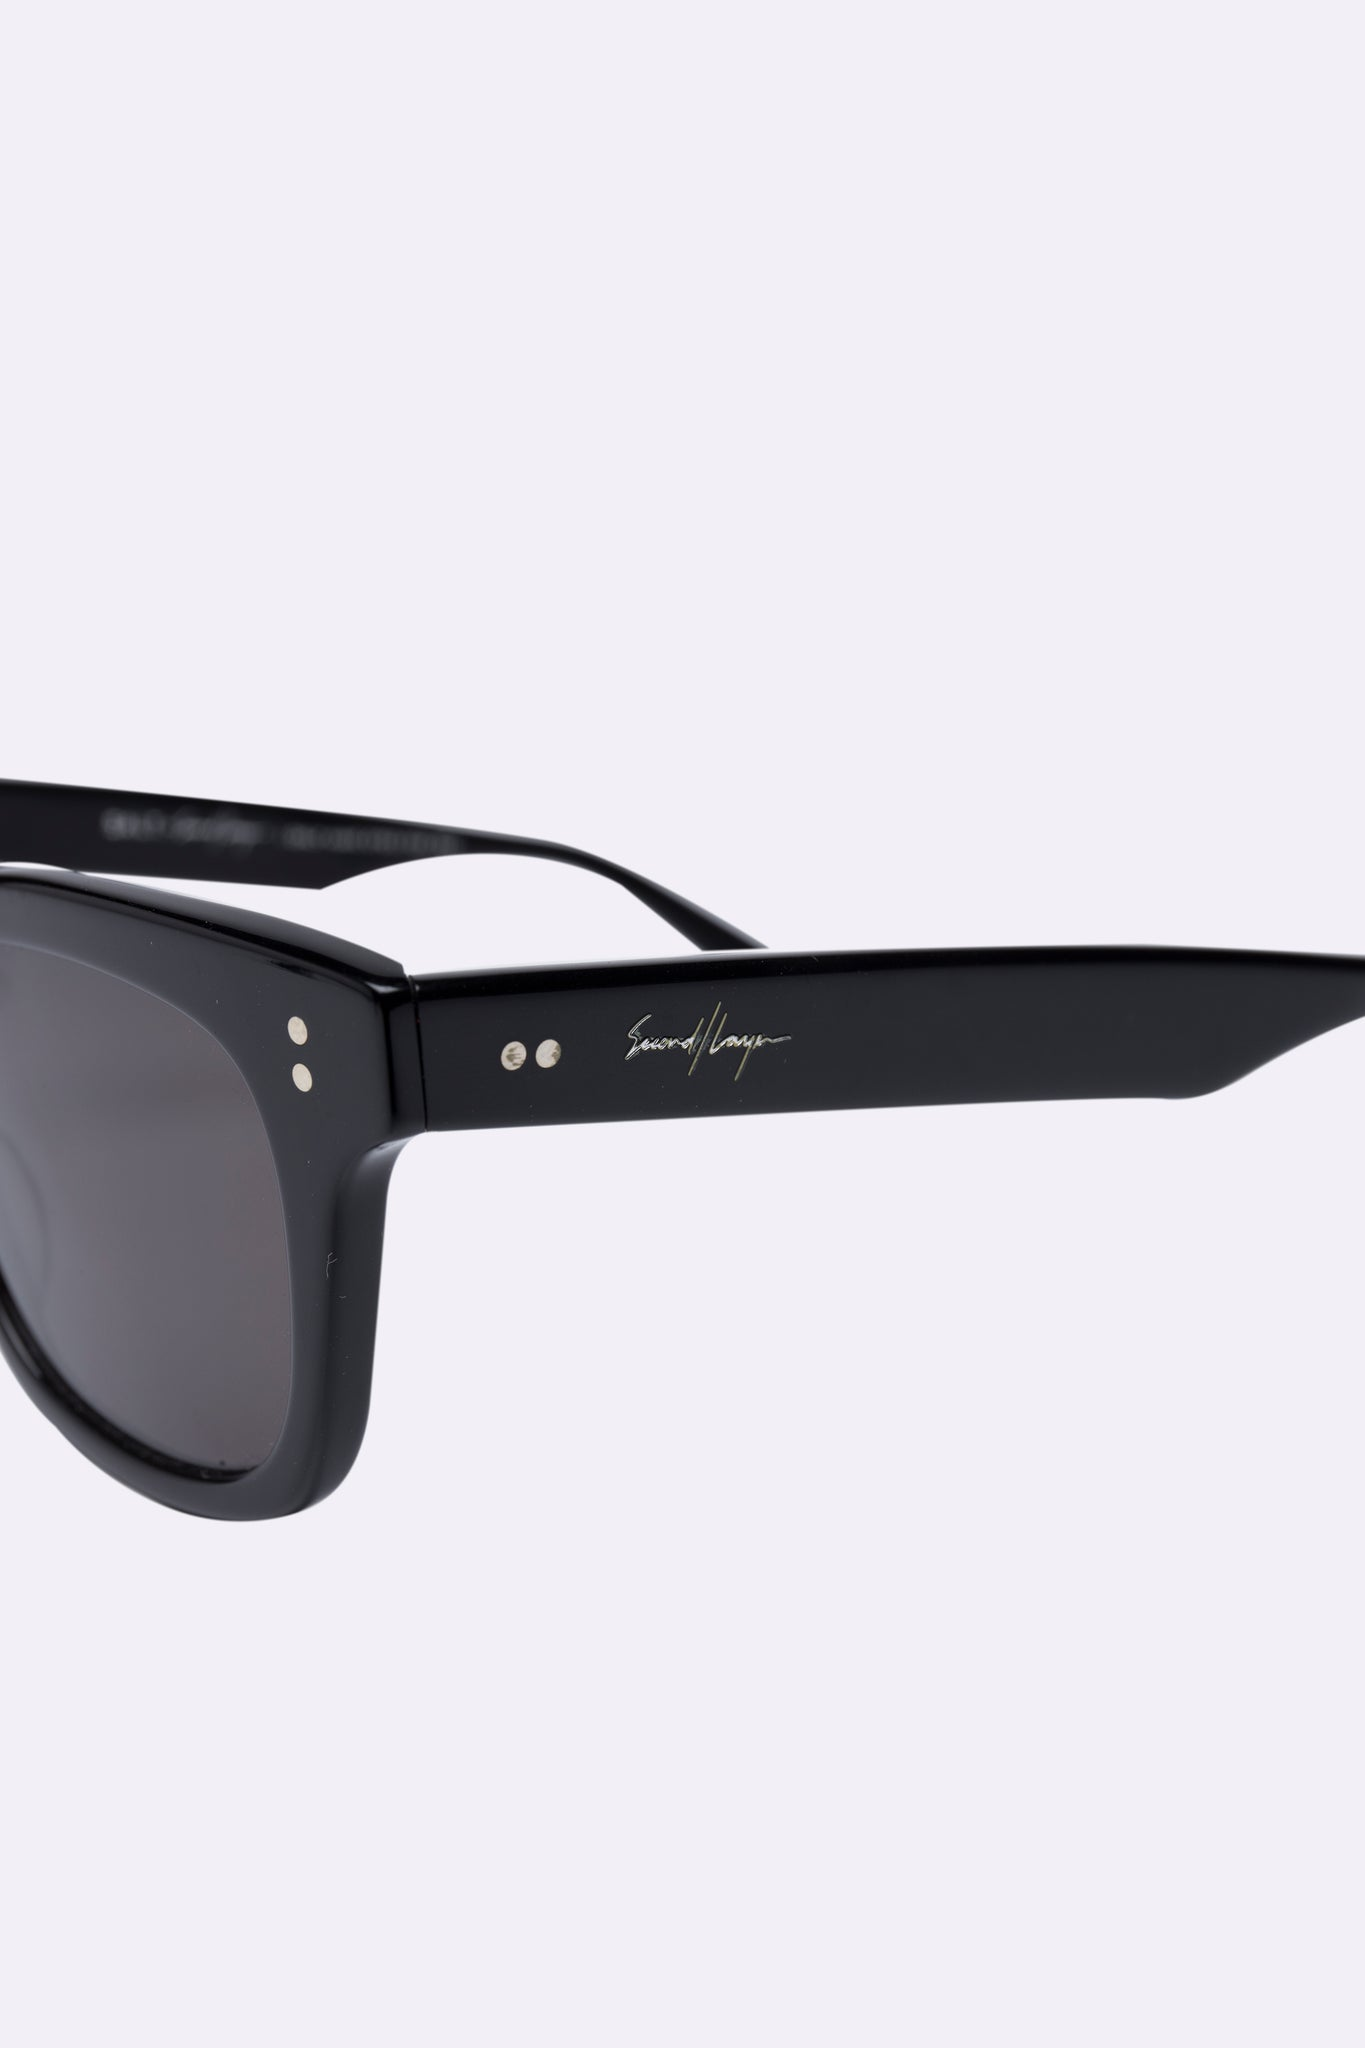 Salt. x Second/Layer Sunglasses Black Polarized